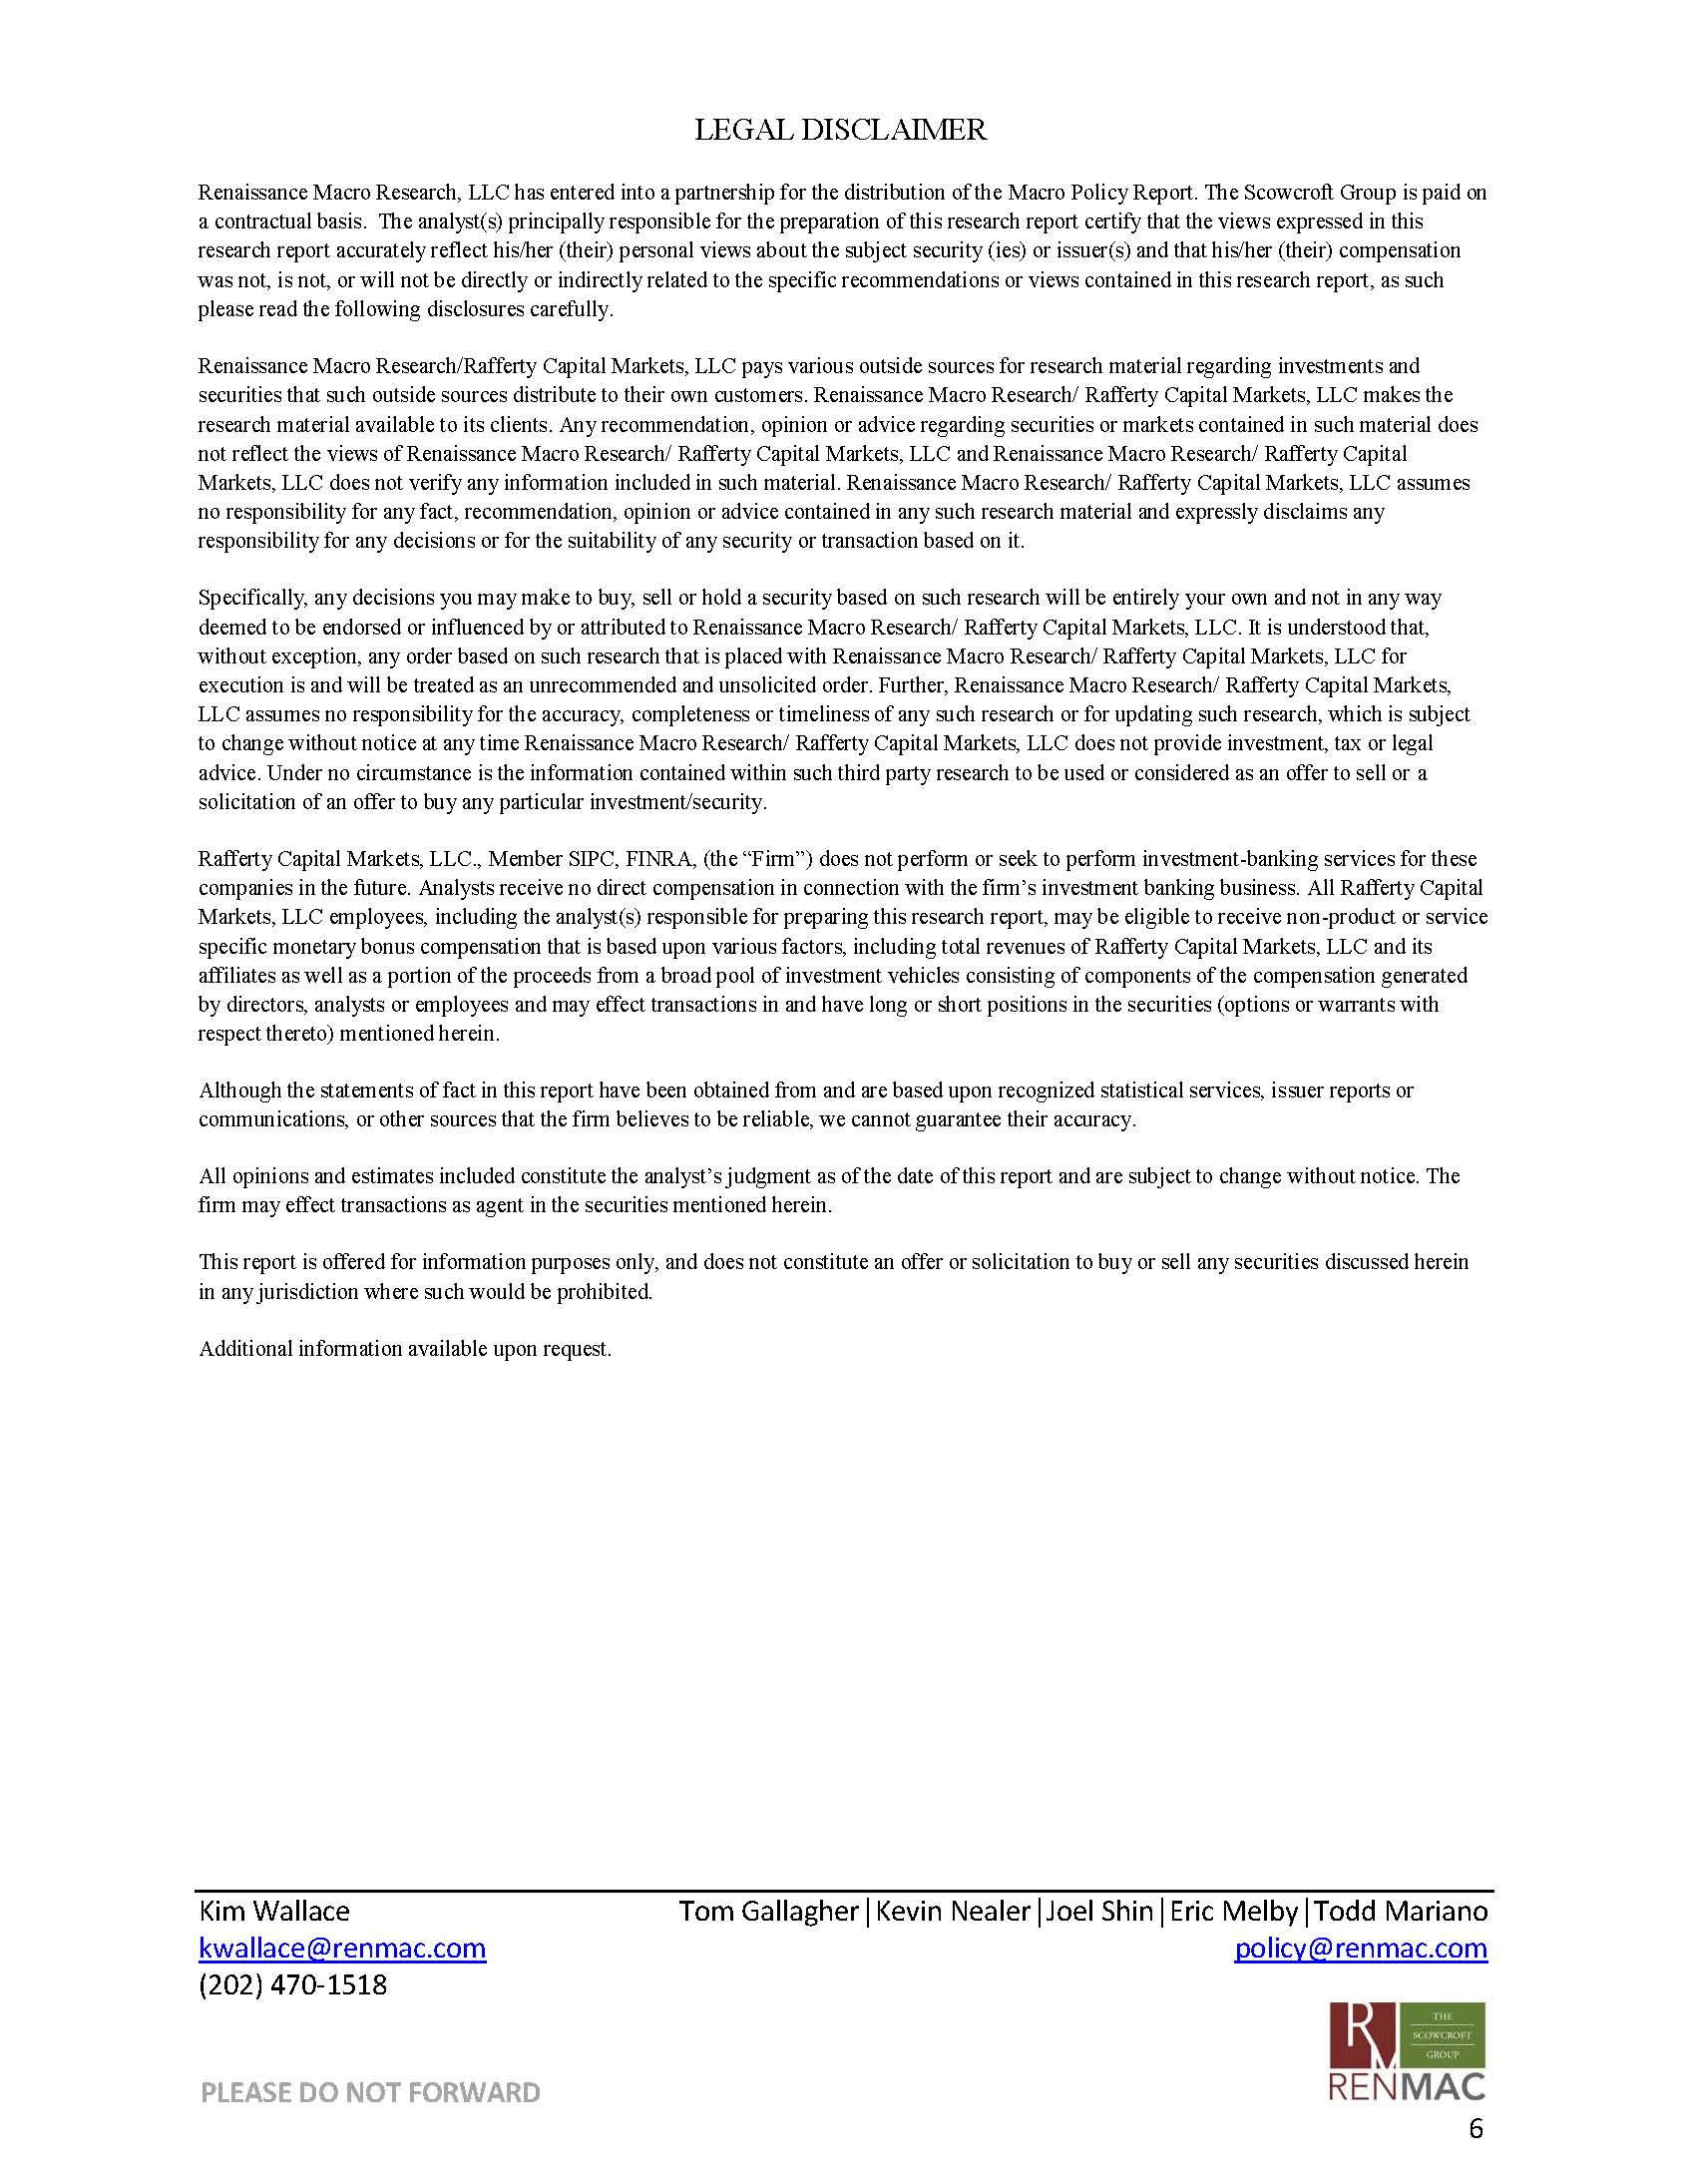 2012-07-23 WDPD_Page_6